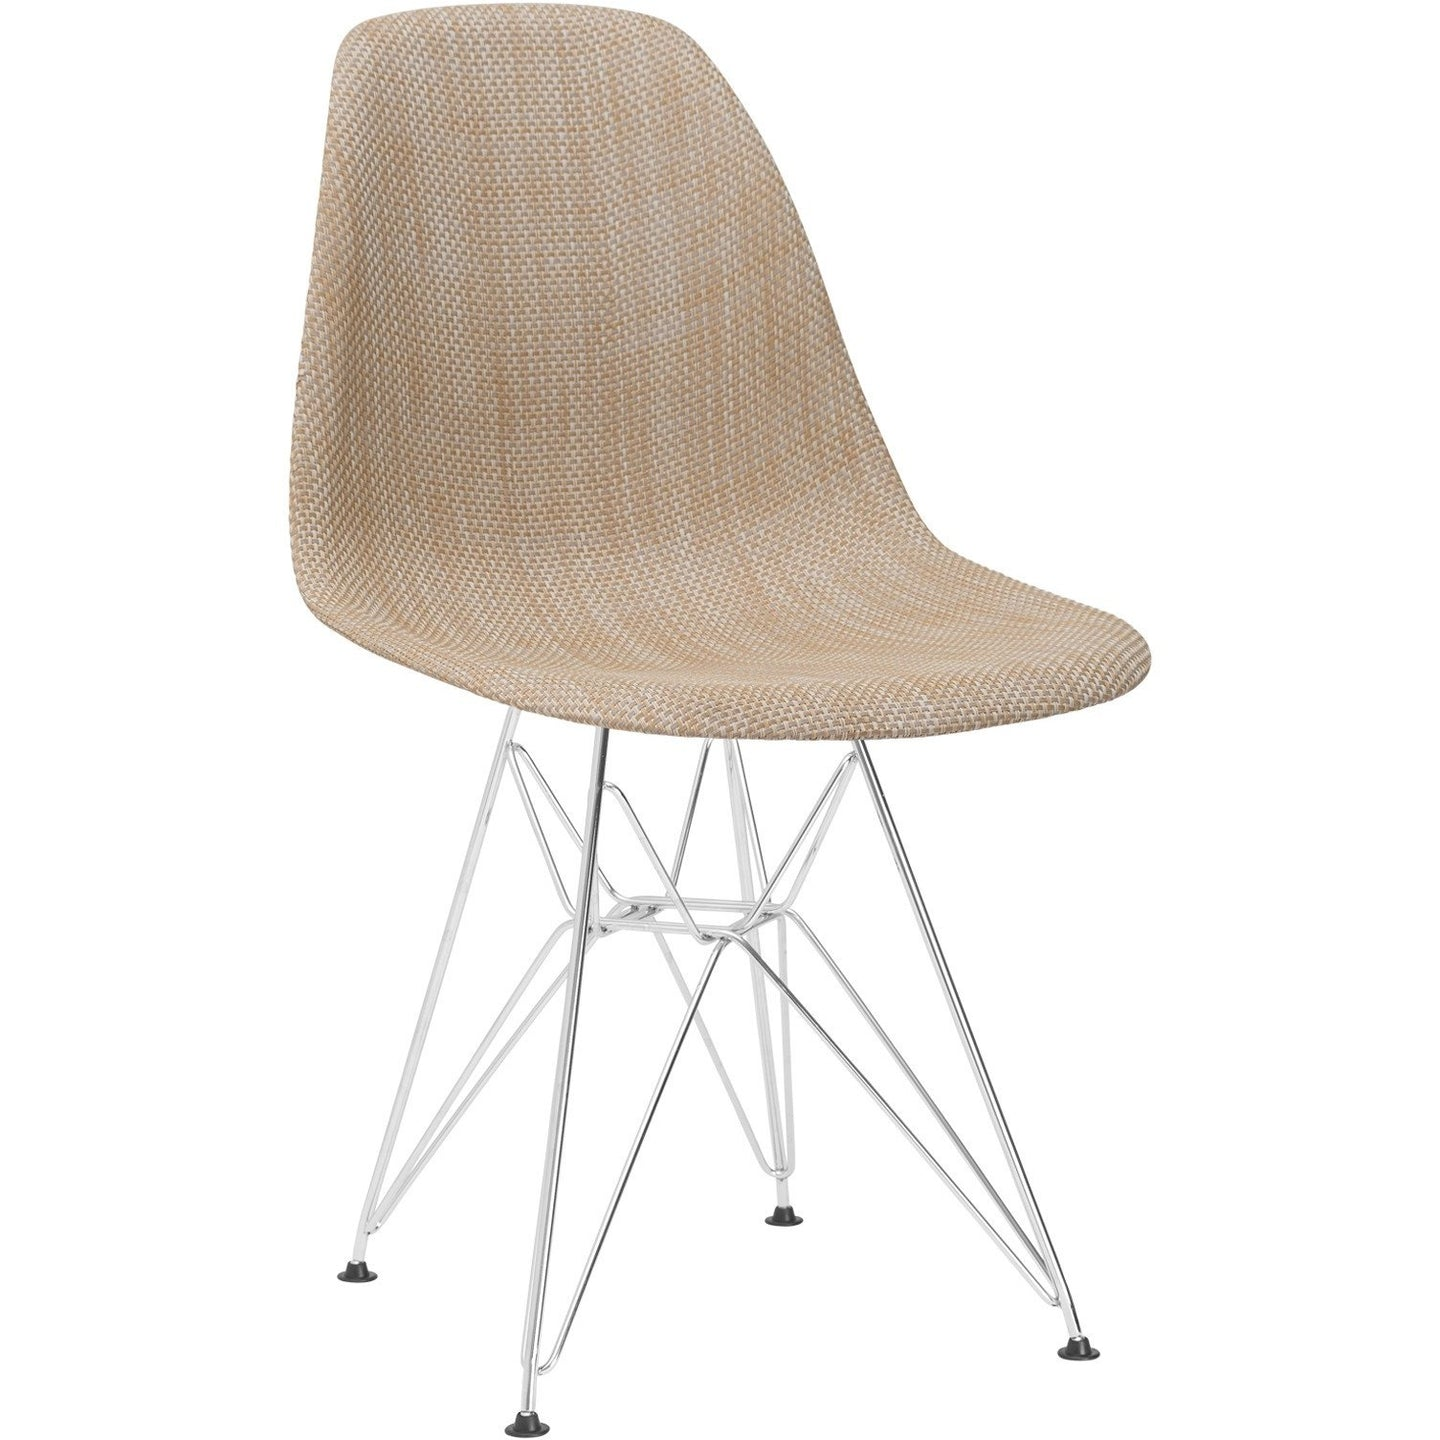 Lanna Furniture Woven Valiza Dining Chair Beige, Dining Chairs - Lanna Furniture, Minimal & Modern - 1